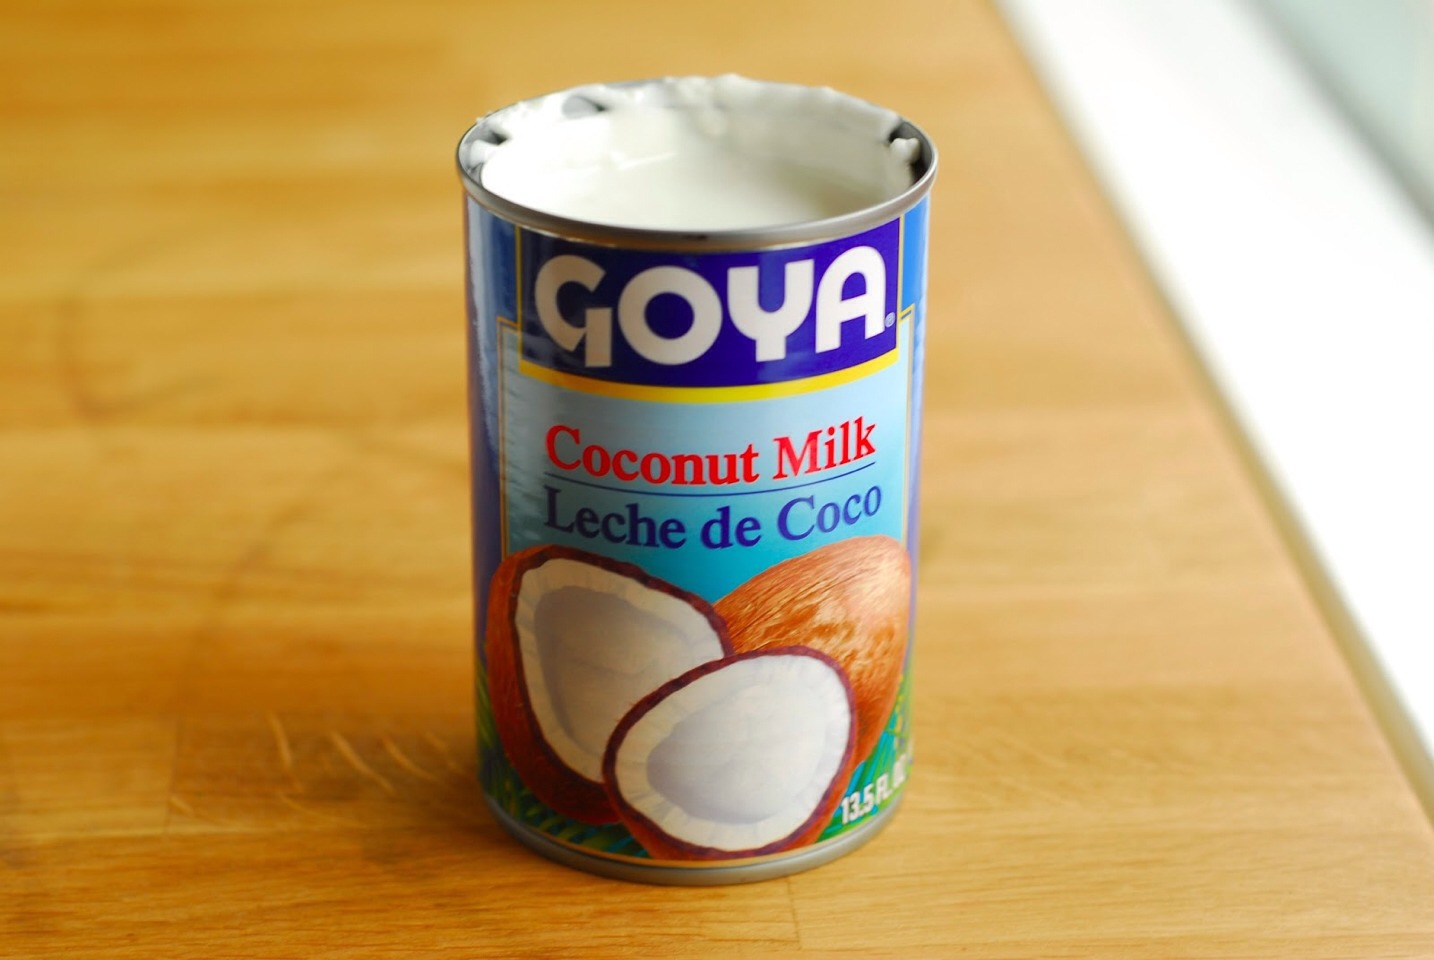 Pour 3/4 of the can of Cream of Coconut into a bowl.